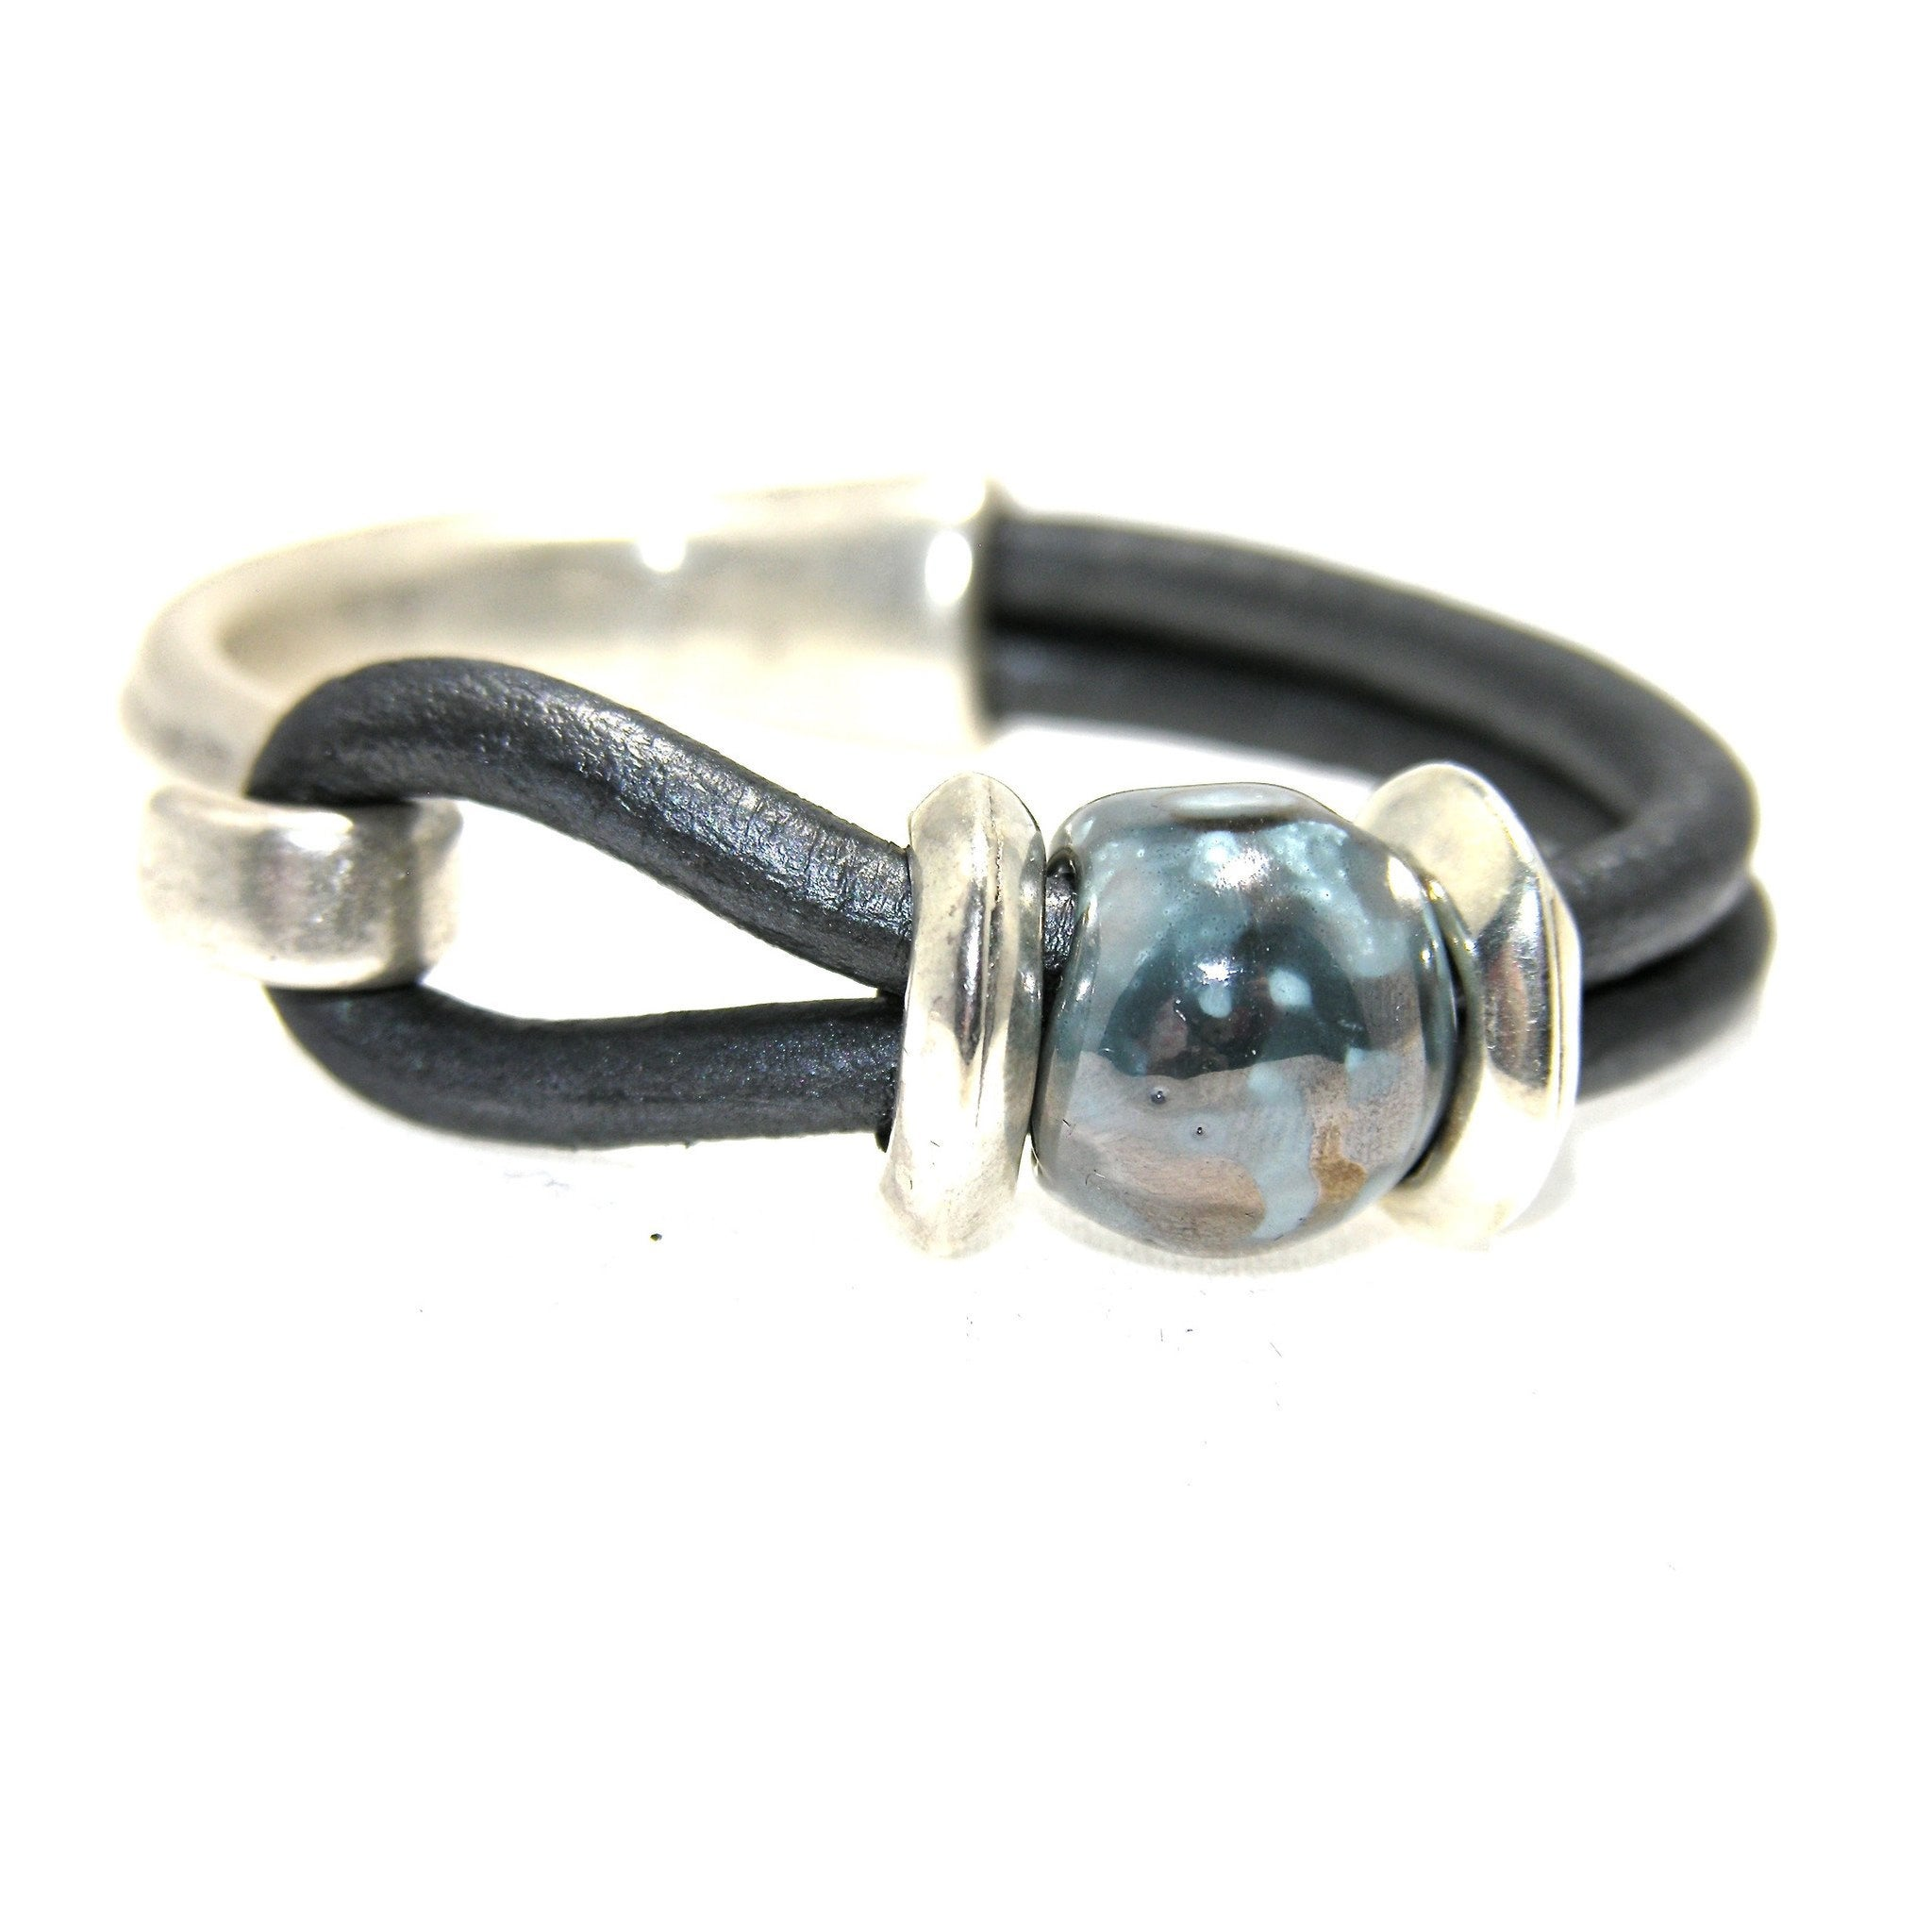 Silver and Leather Ceramic Focal Half Cuff Bracelet - SPREE